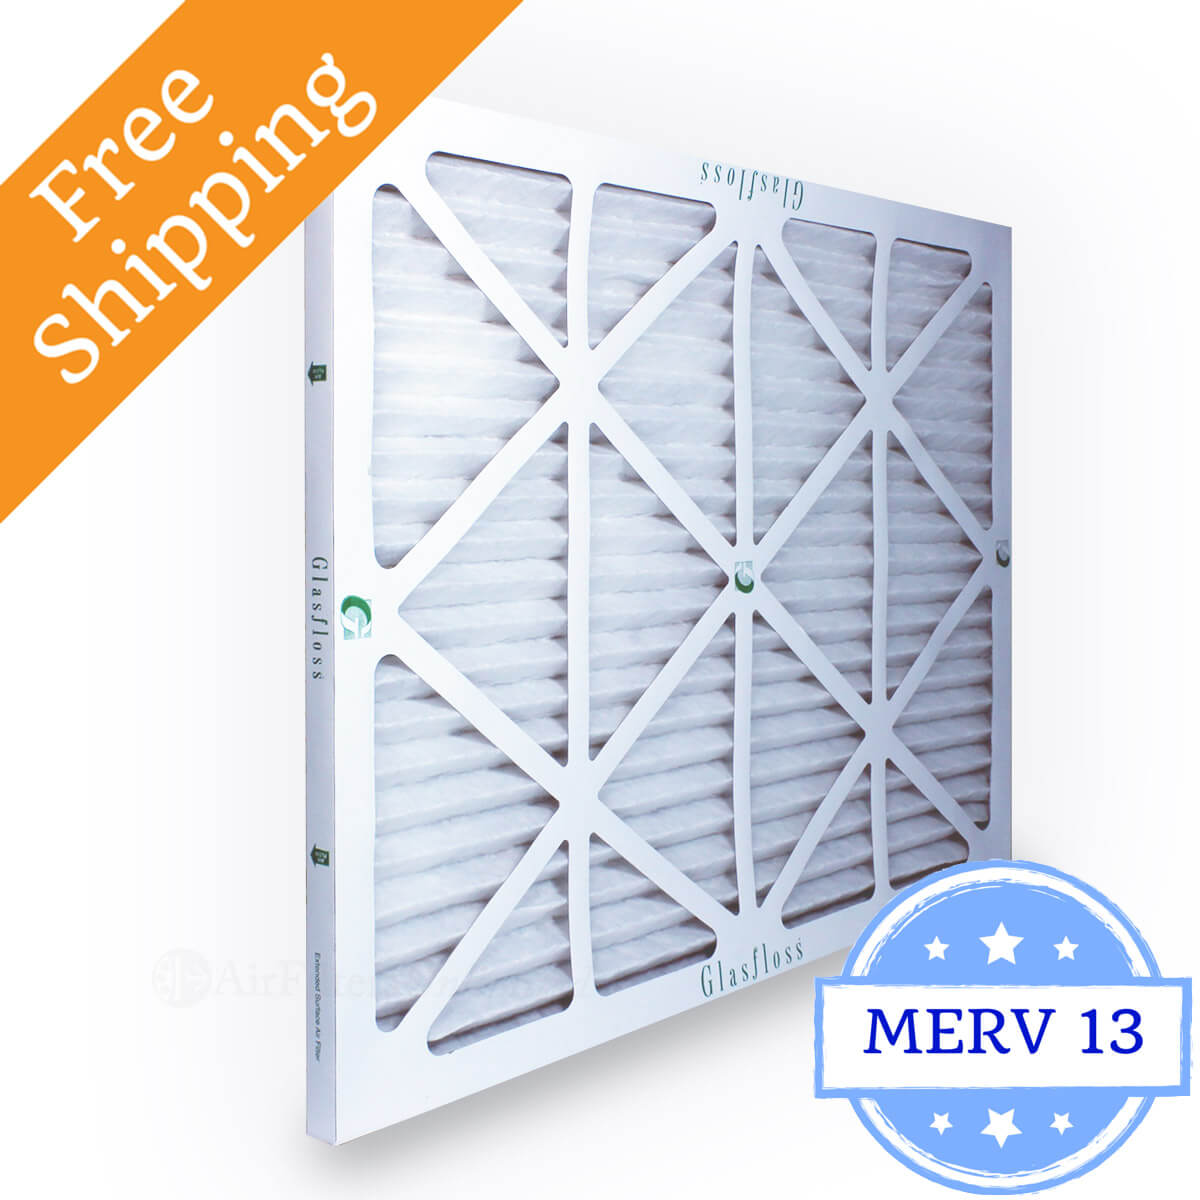 Glasfloss 20x24x1 Air Filter MR-13 Series